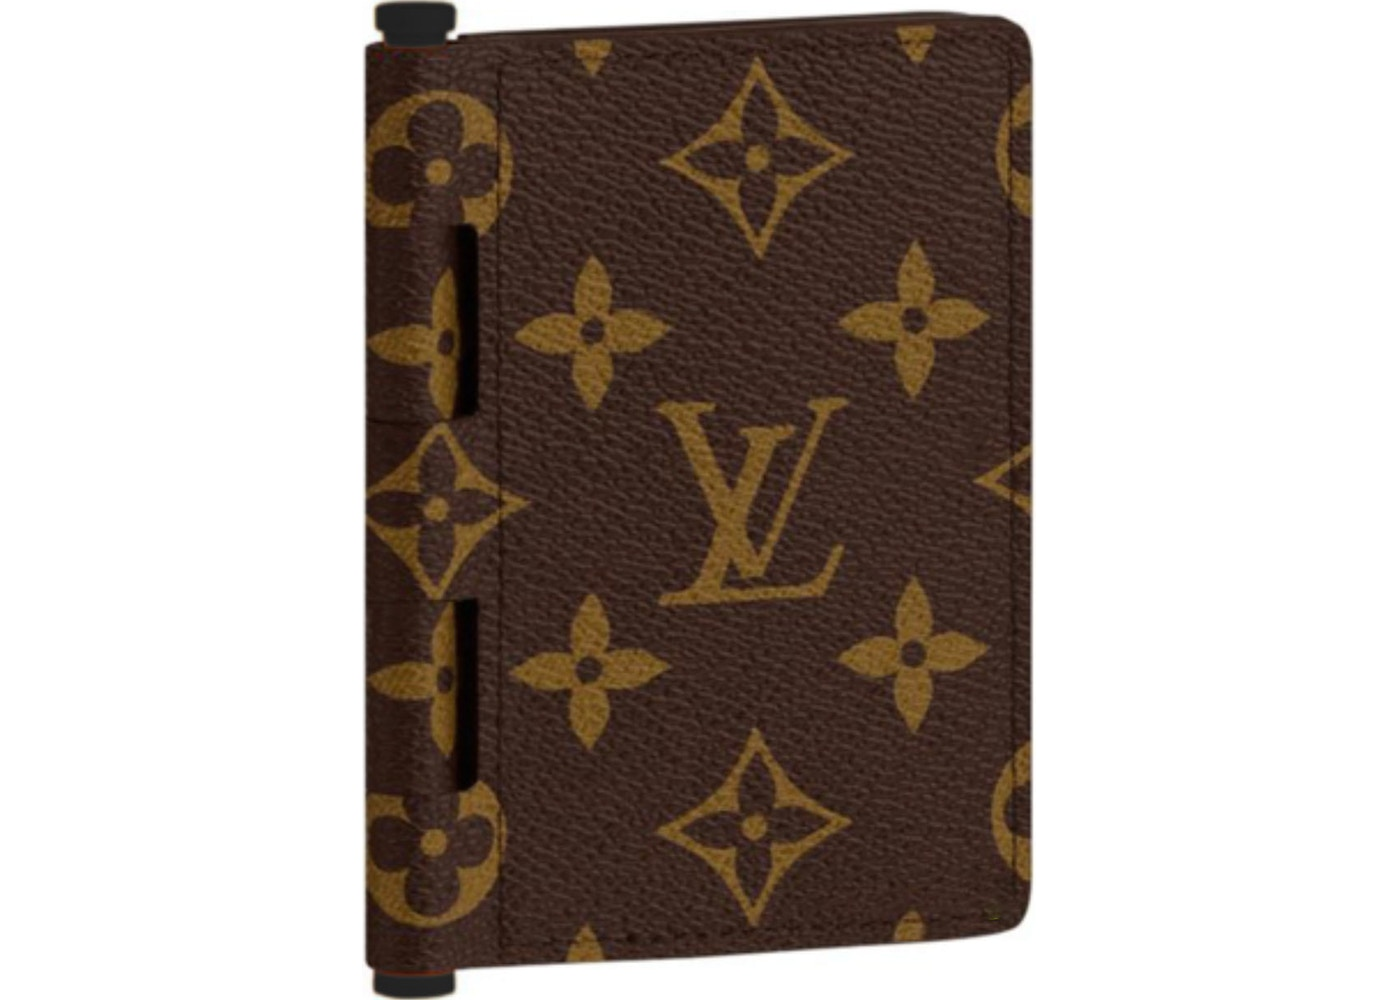 fac8be07c022e The Guide to Buying and Selling Virgil Abloh s Louis Vuitton SS19 ...